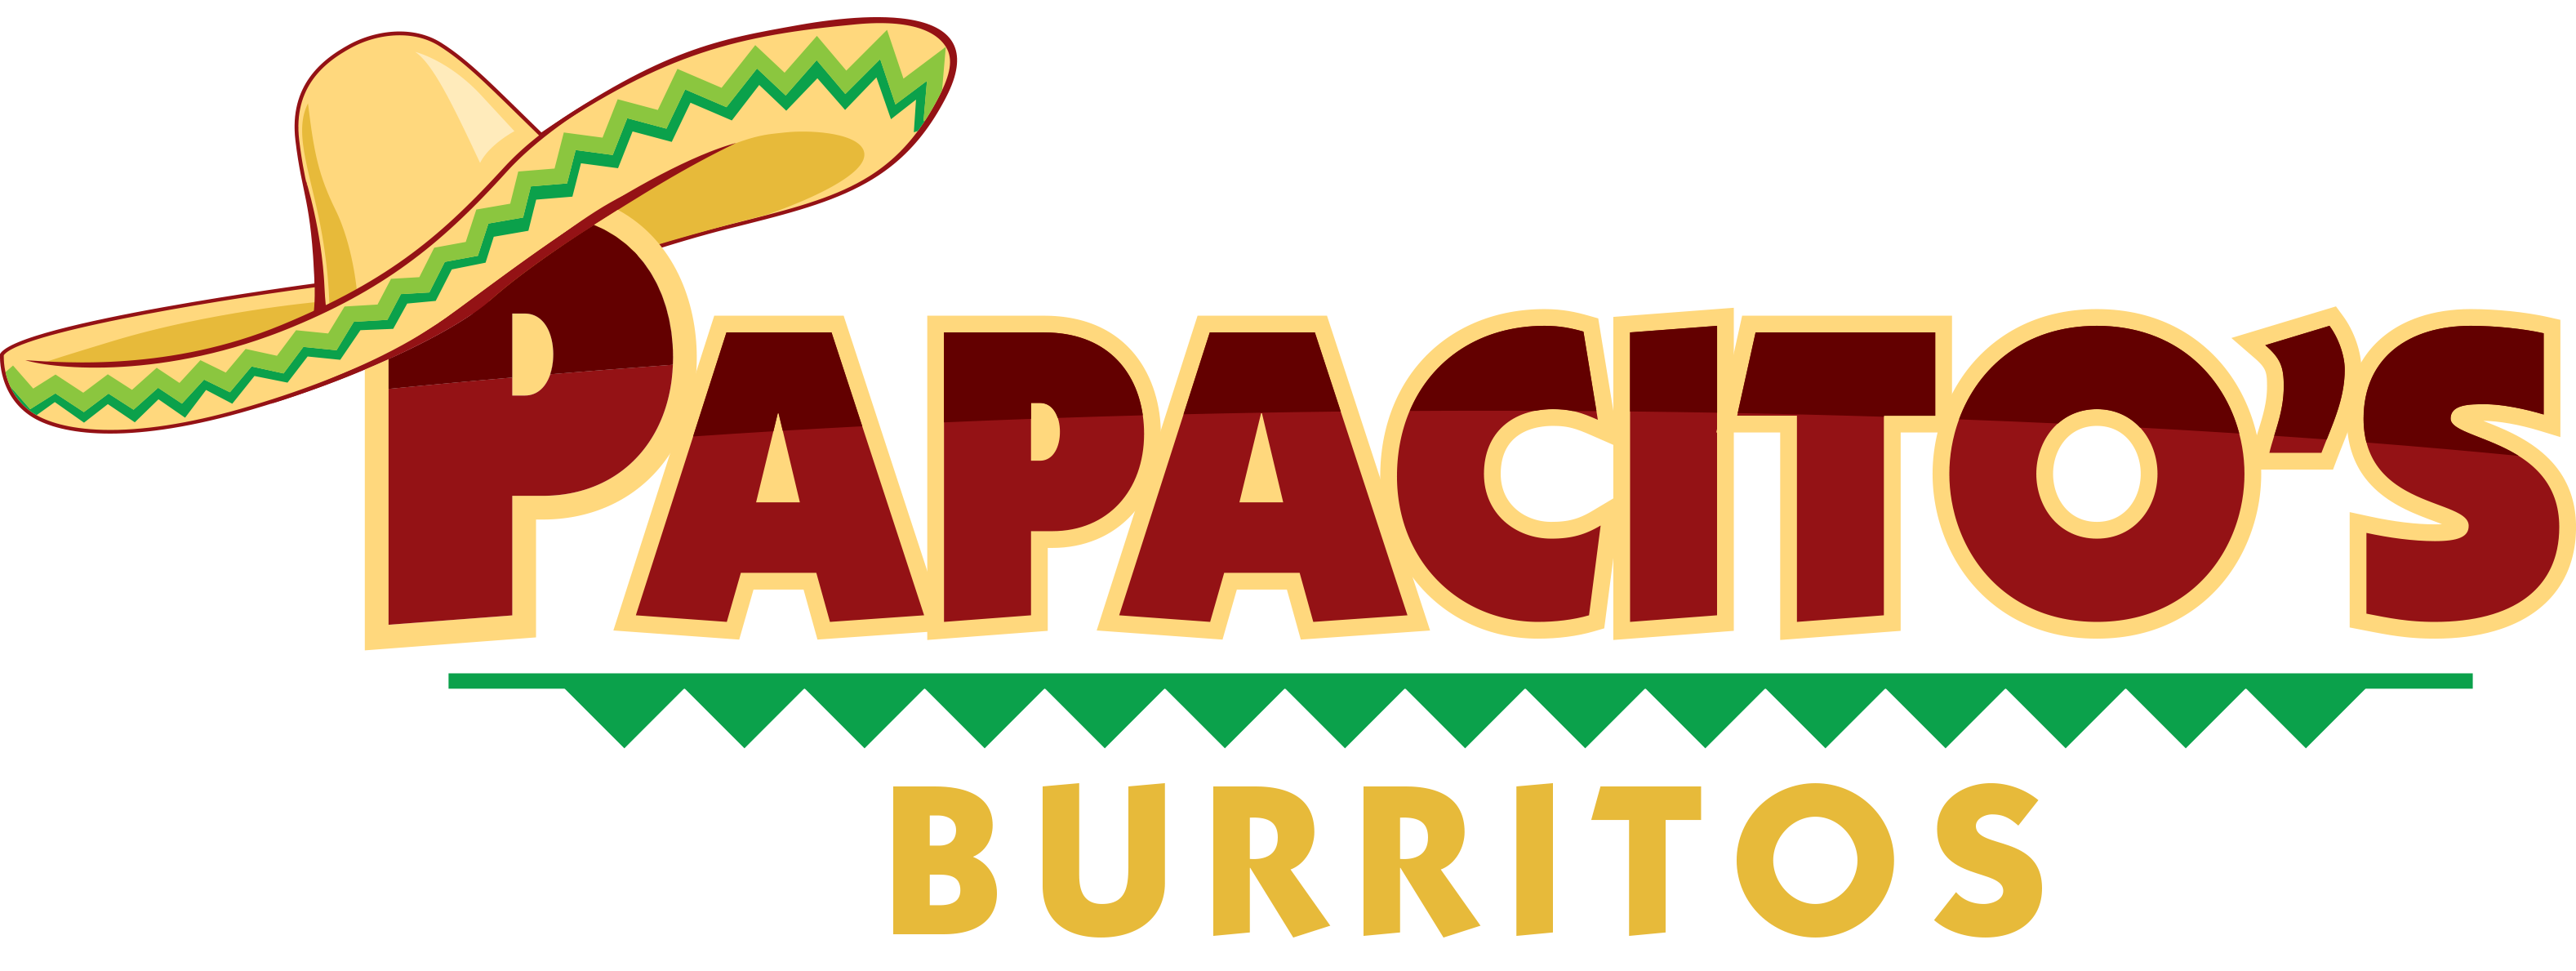 Papacito's Burritos